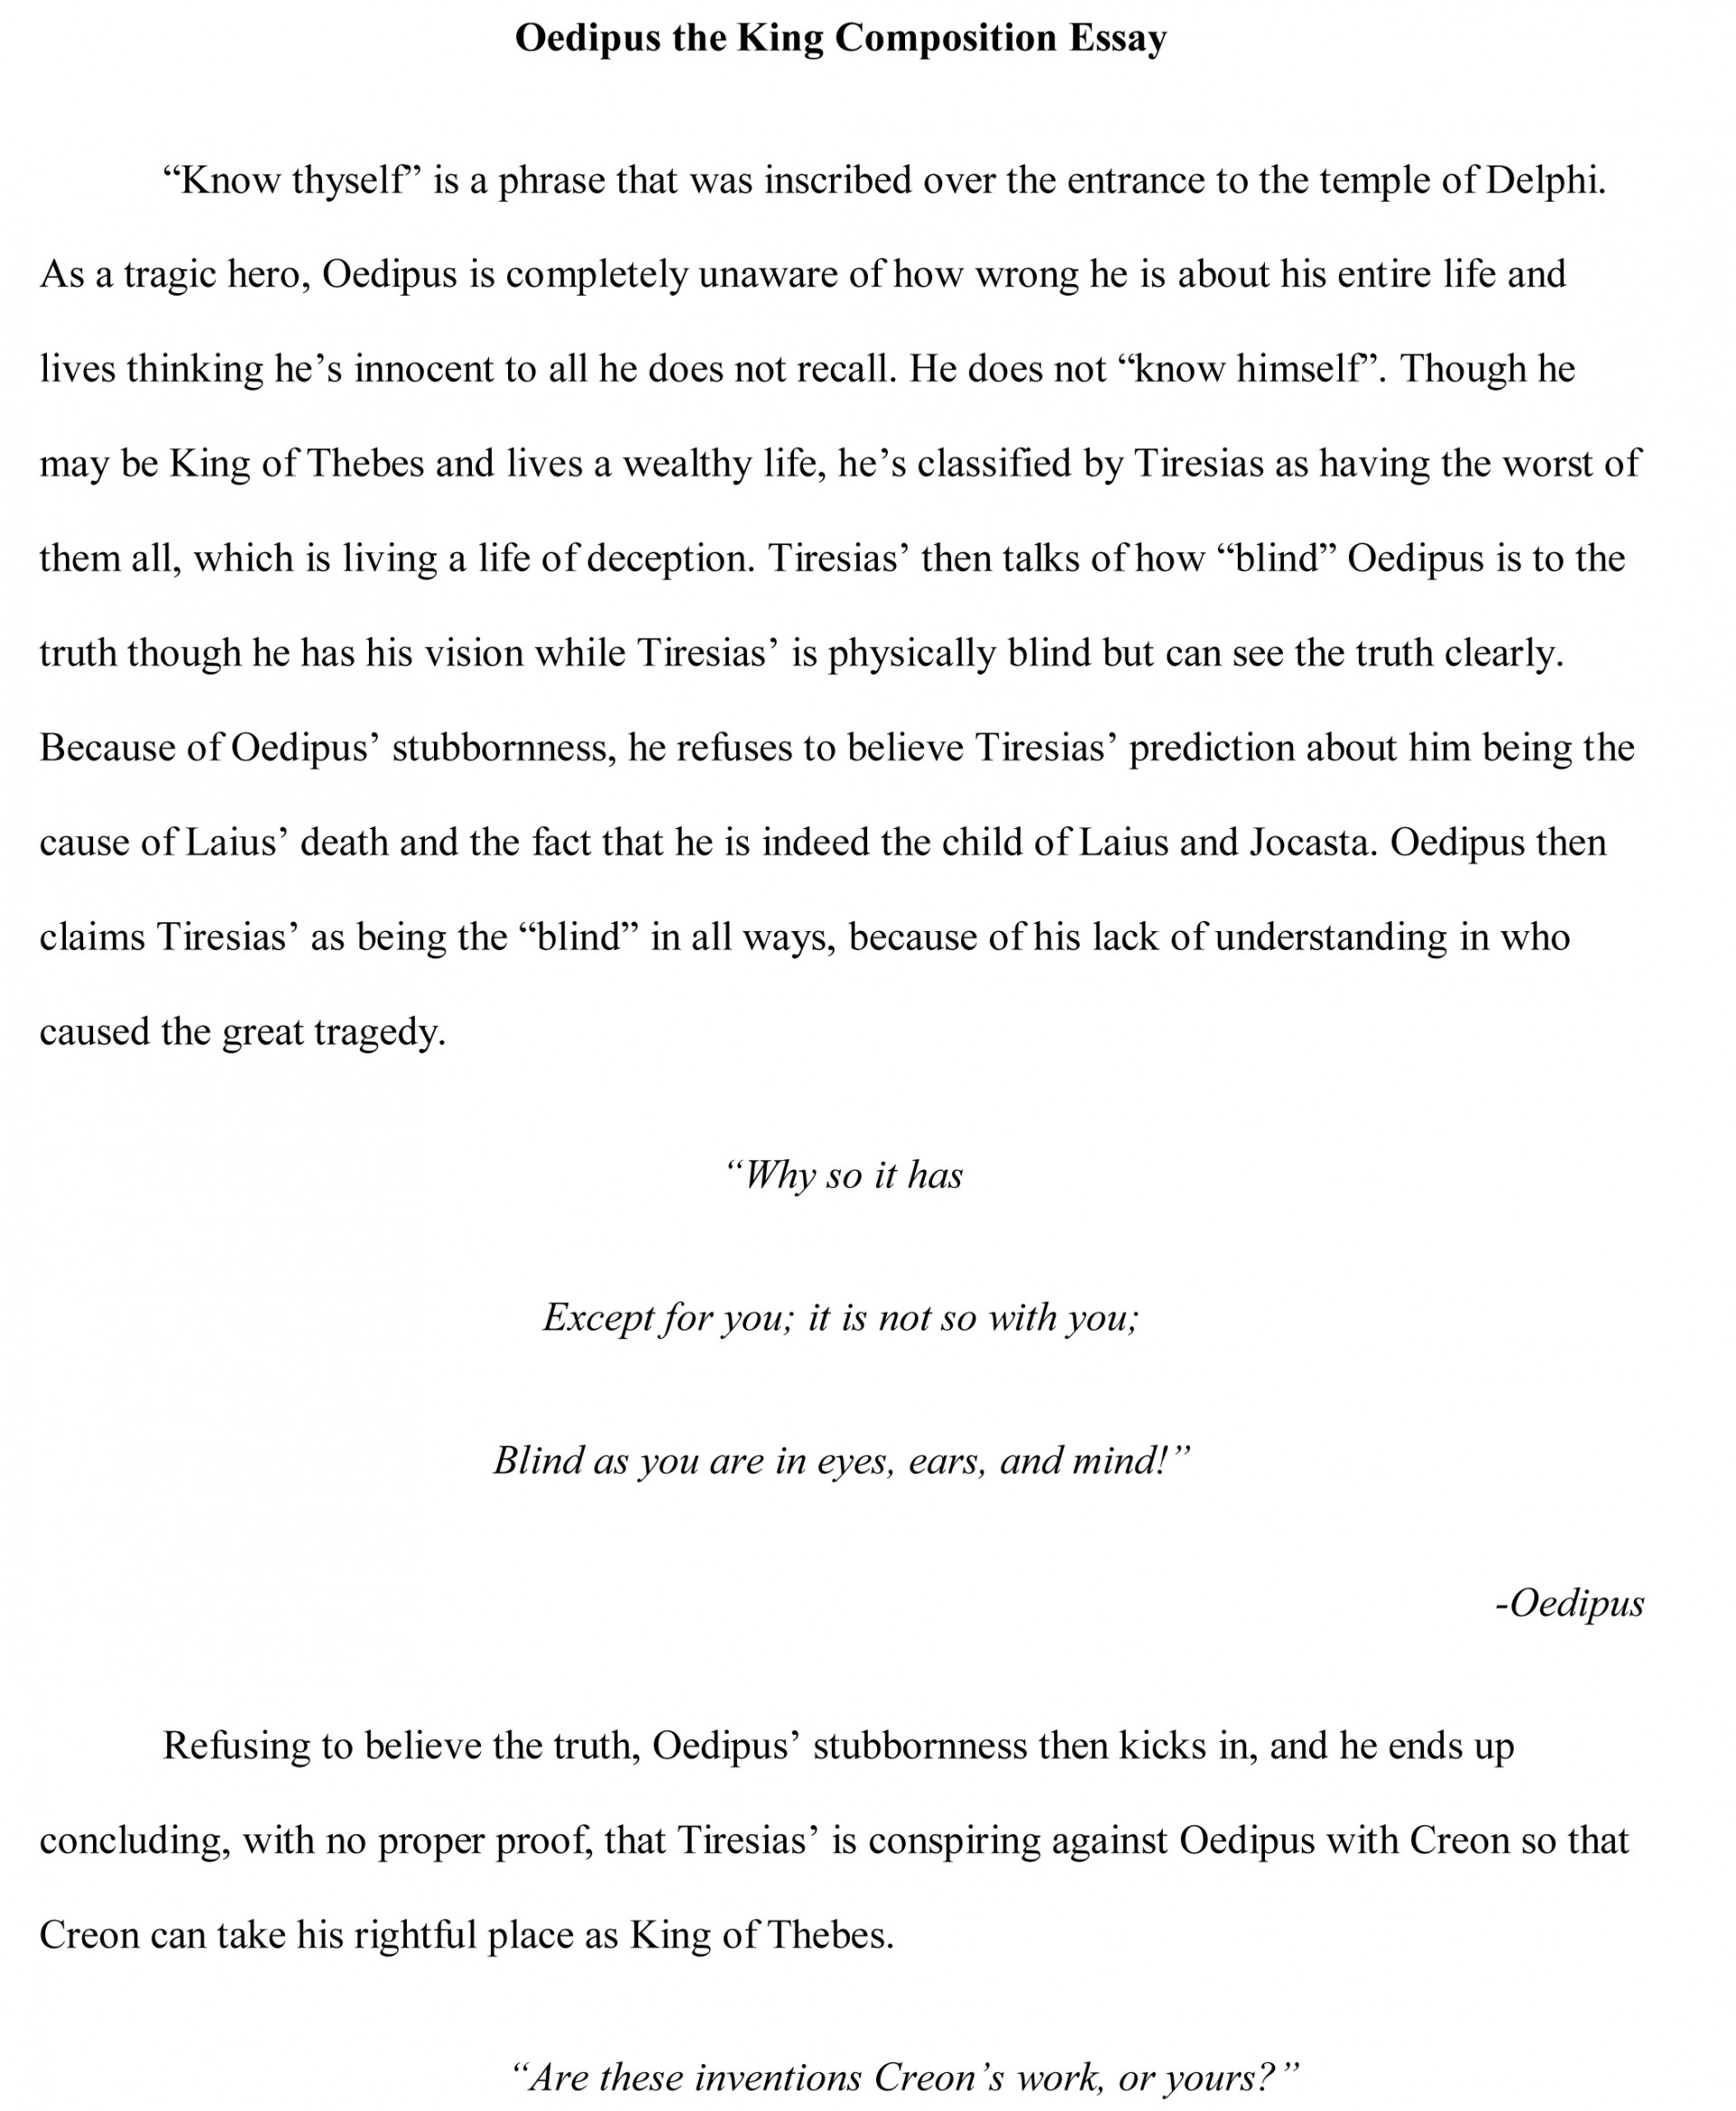 011 Oedipus Essay Free Sample Good Hooks For Essayss Excellent Essays Examples Persuasive Narrative 1920